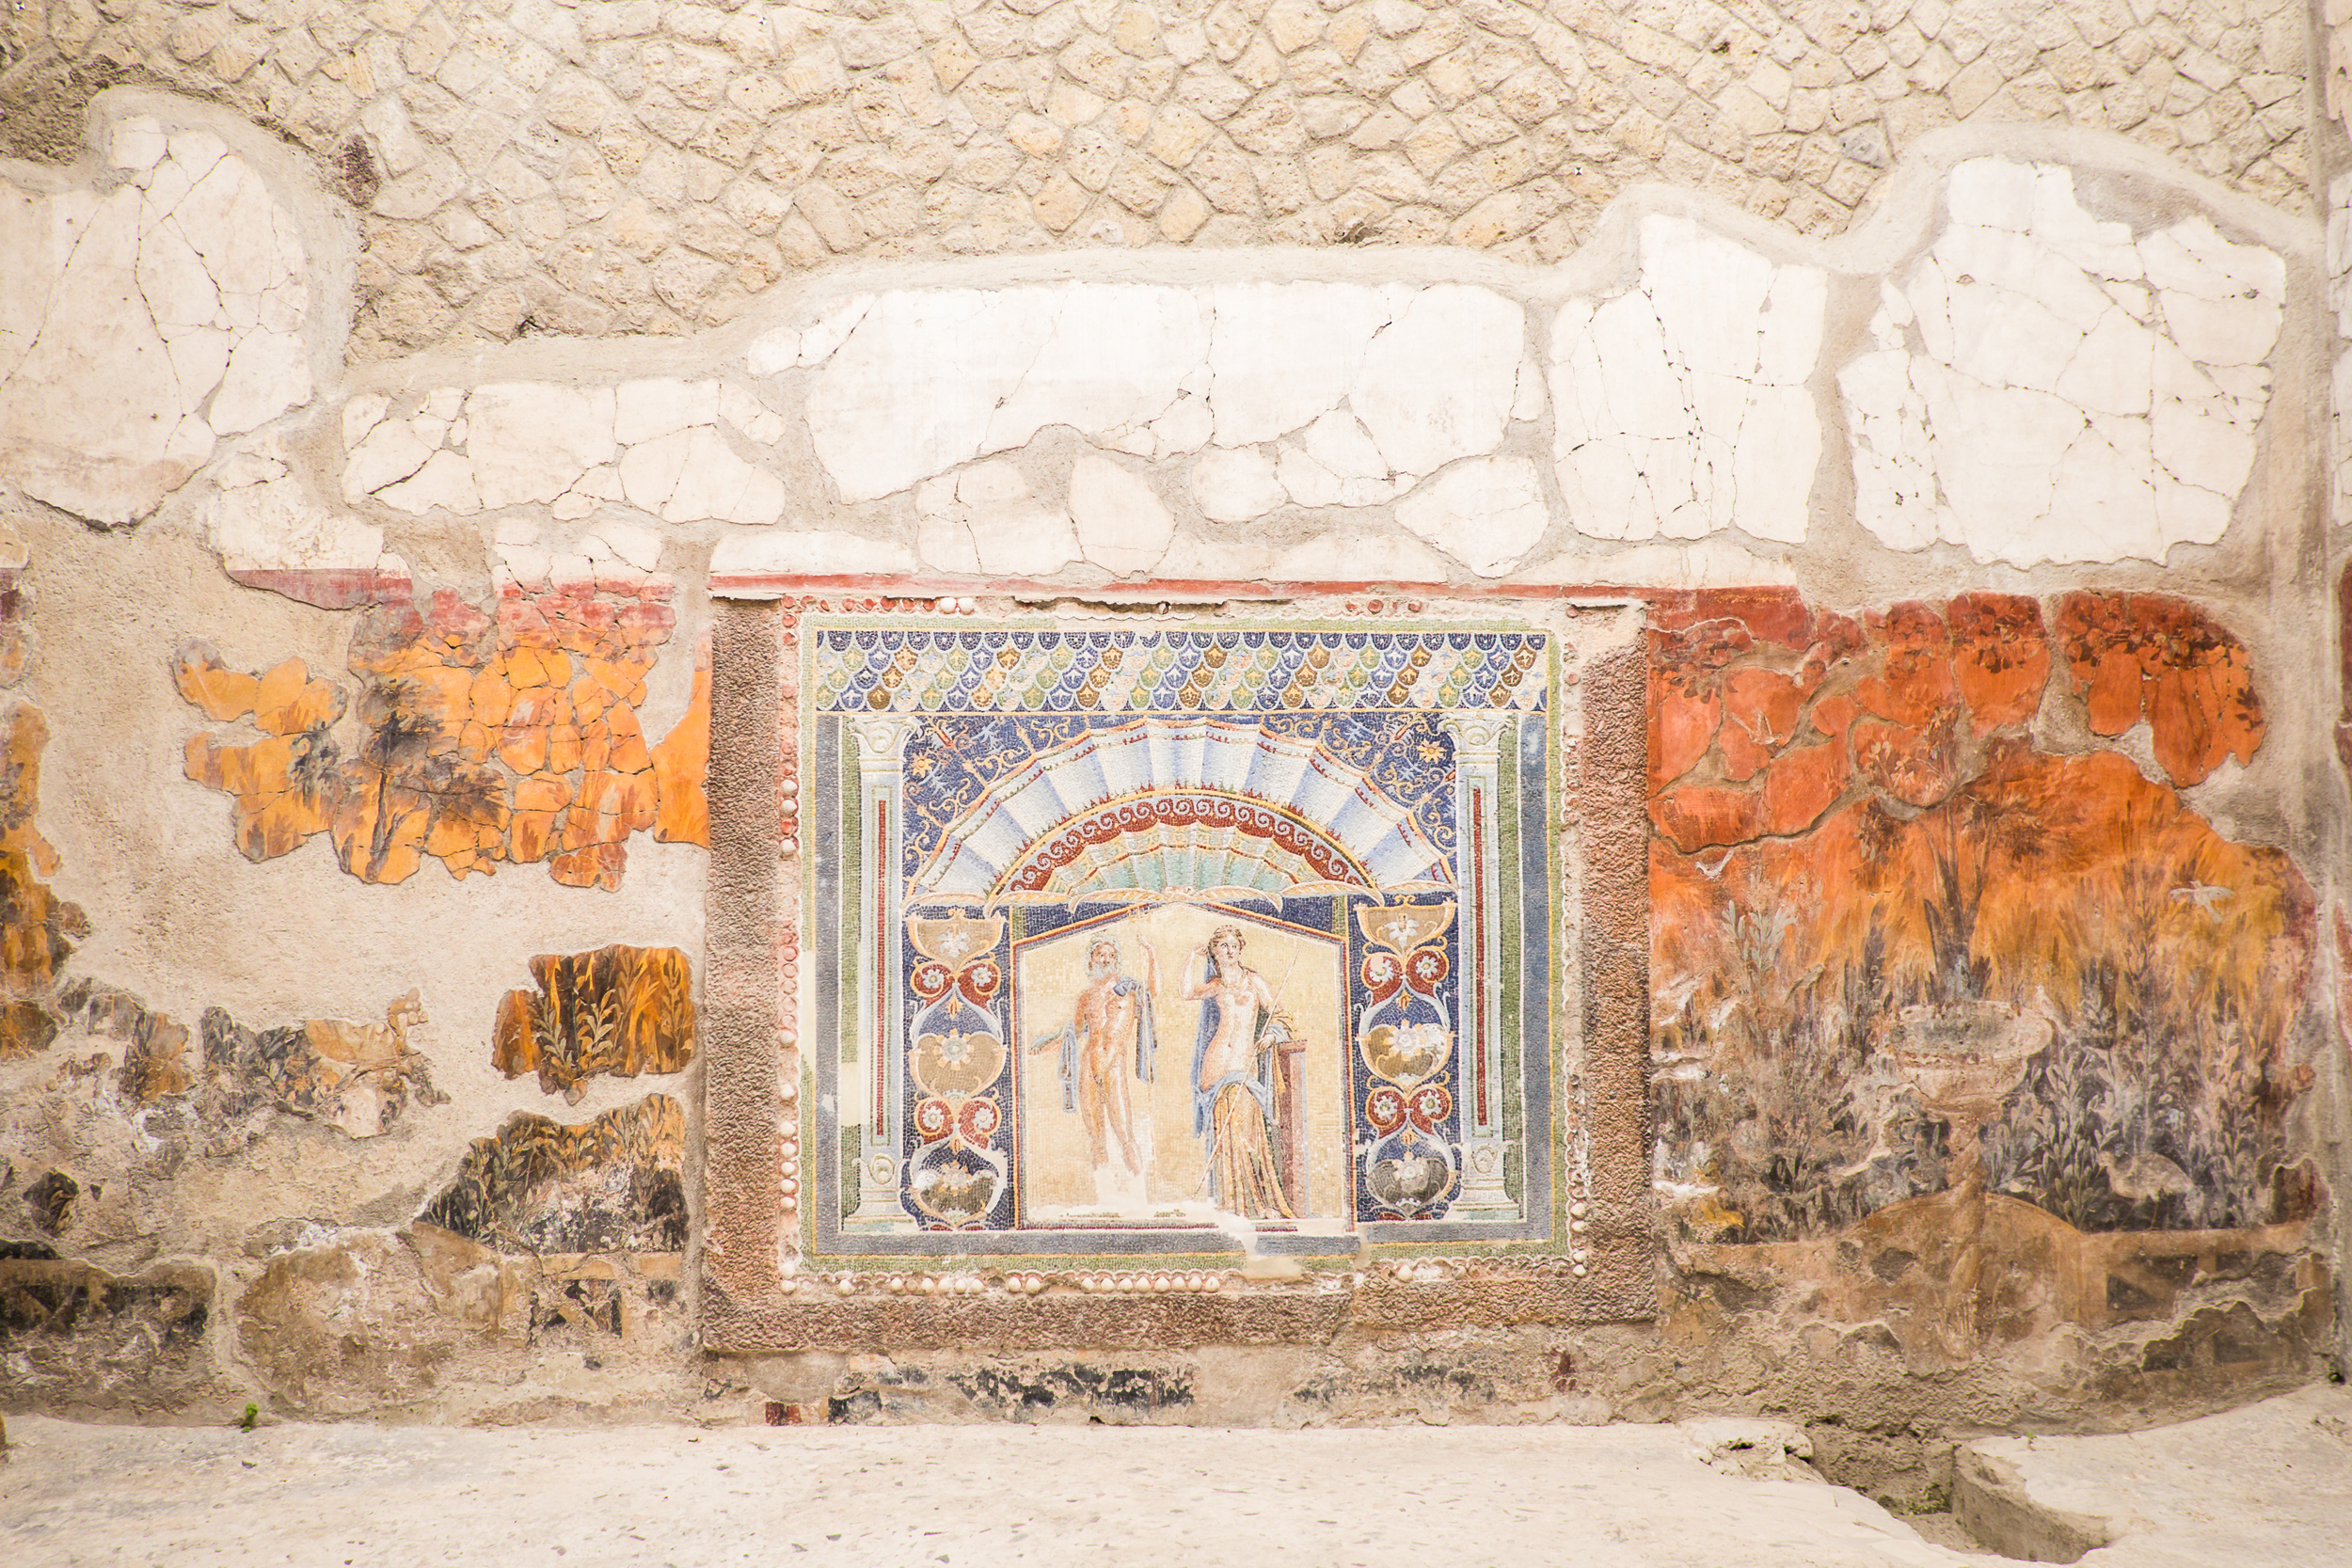 Two thousand years ago, these buildings, homes and courtyards were decorated with plaster, bright frescos and intricate mosaics.